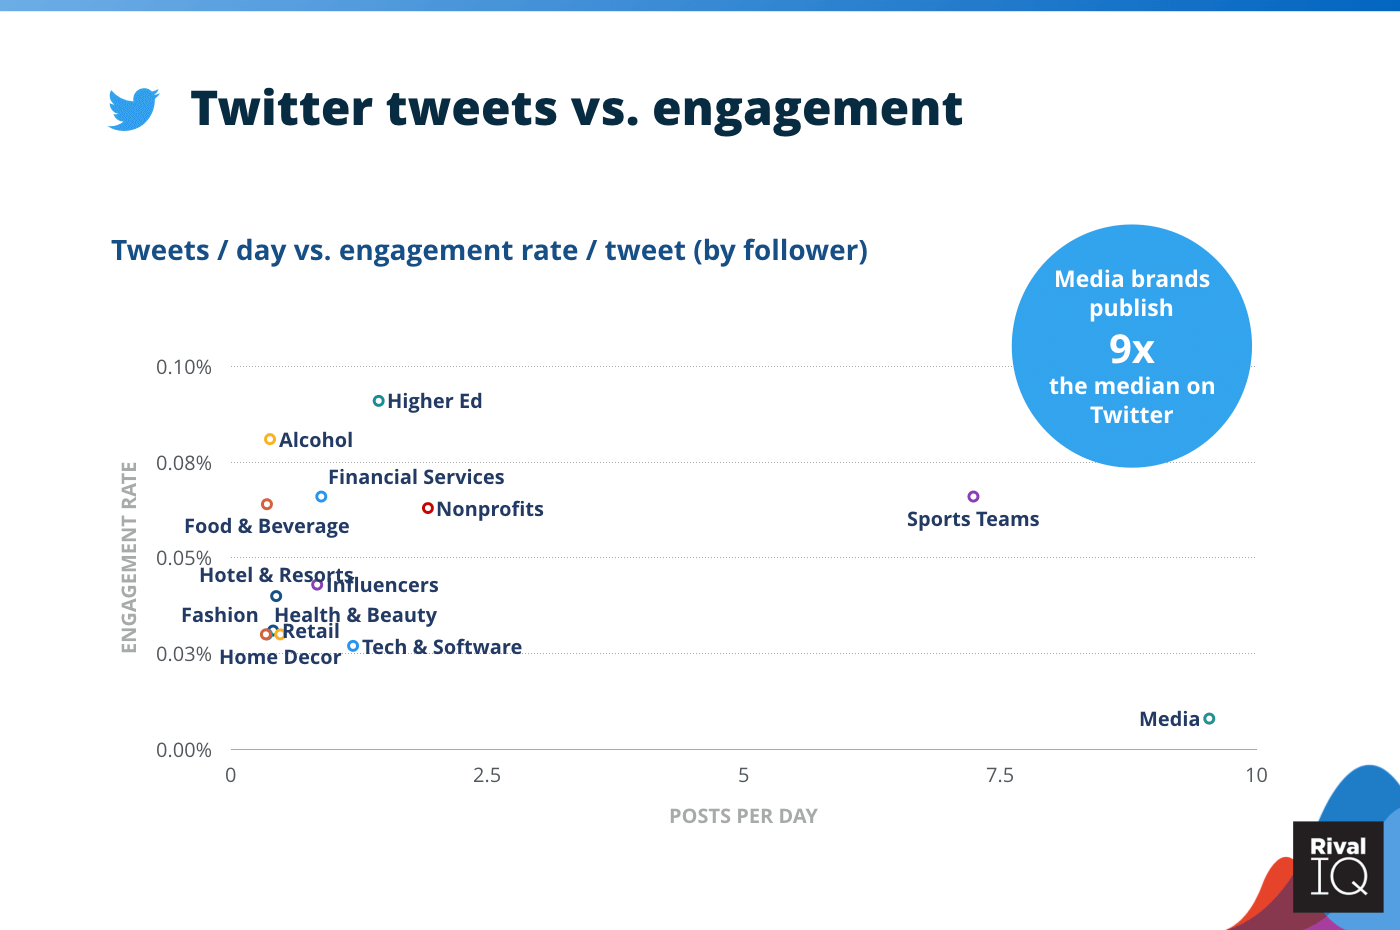 Chart of Twitter tweets per day vs. engagement rate, all industries